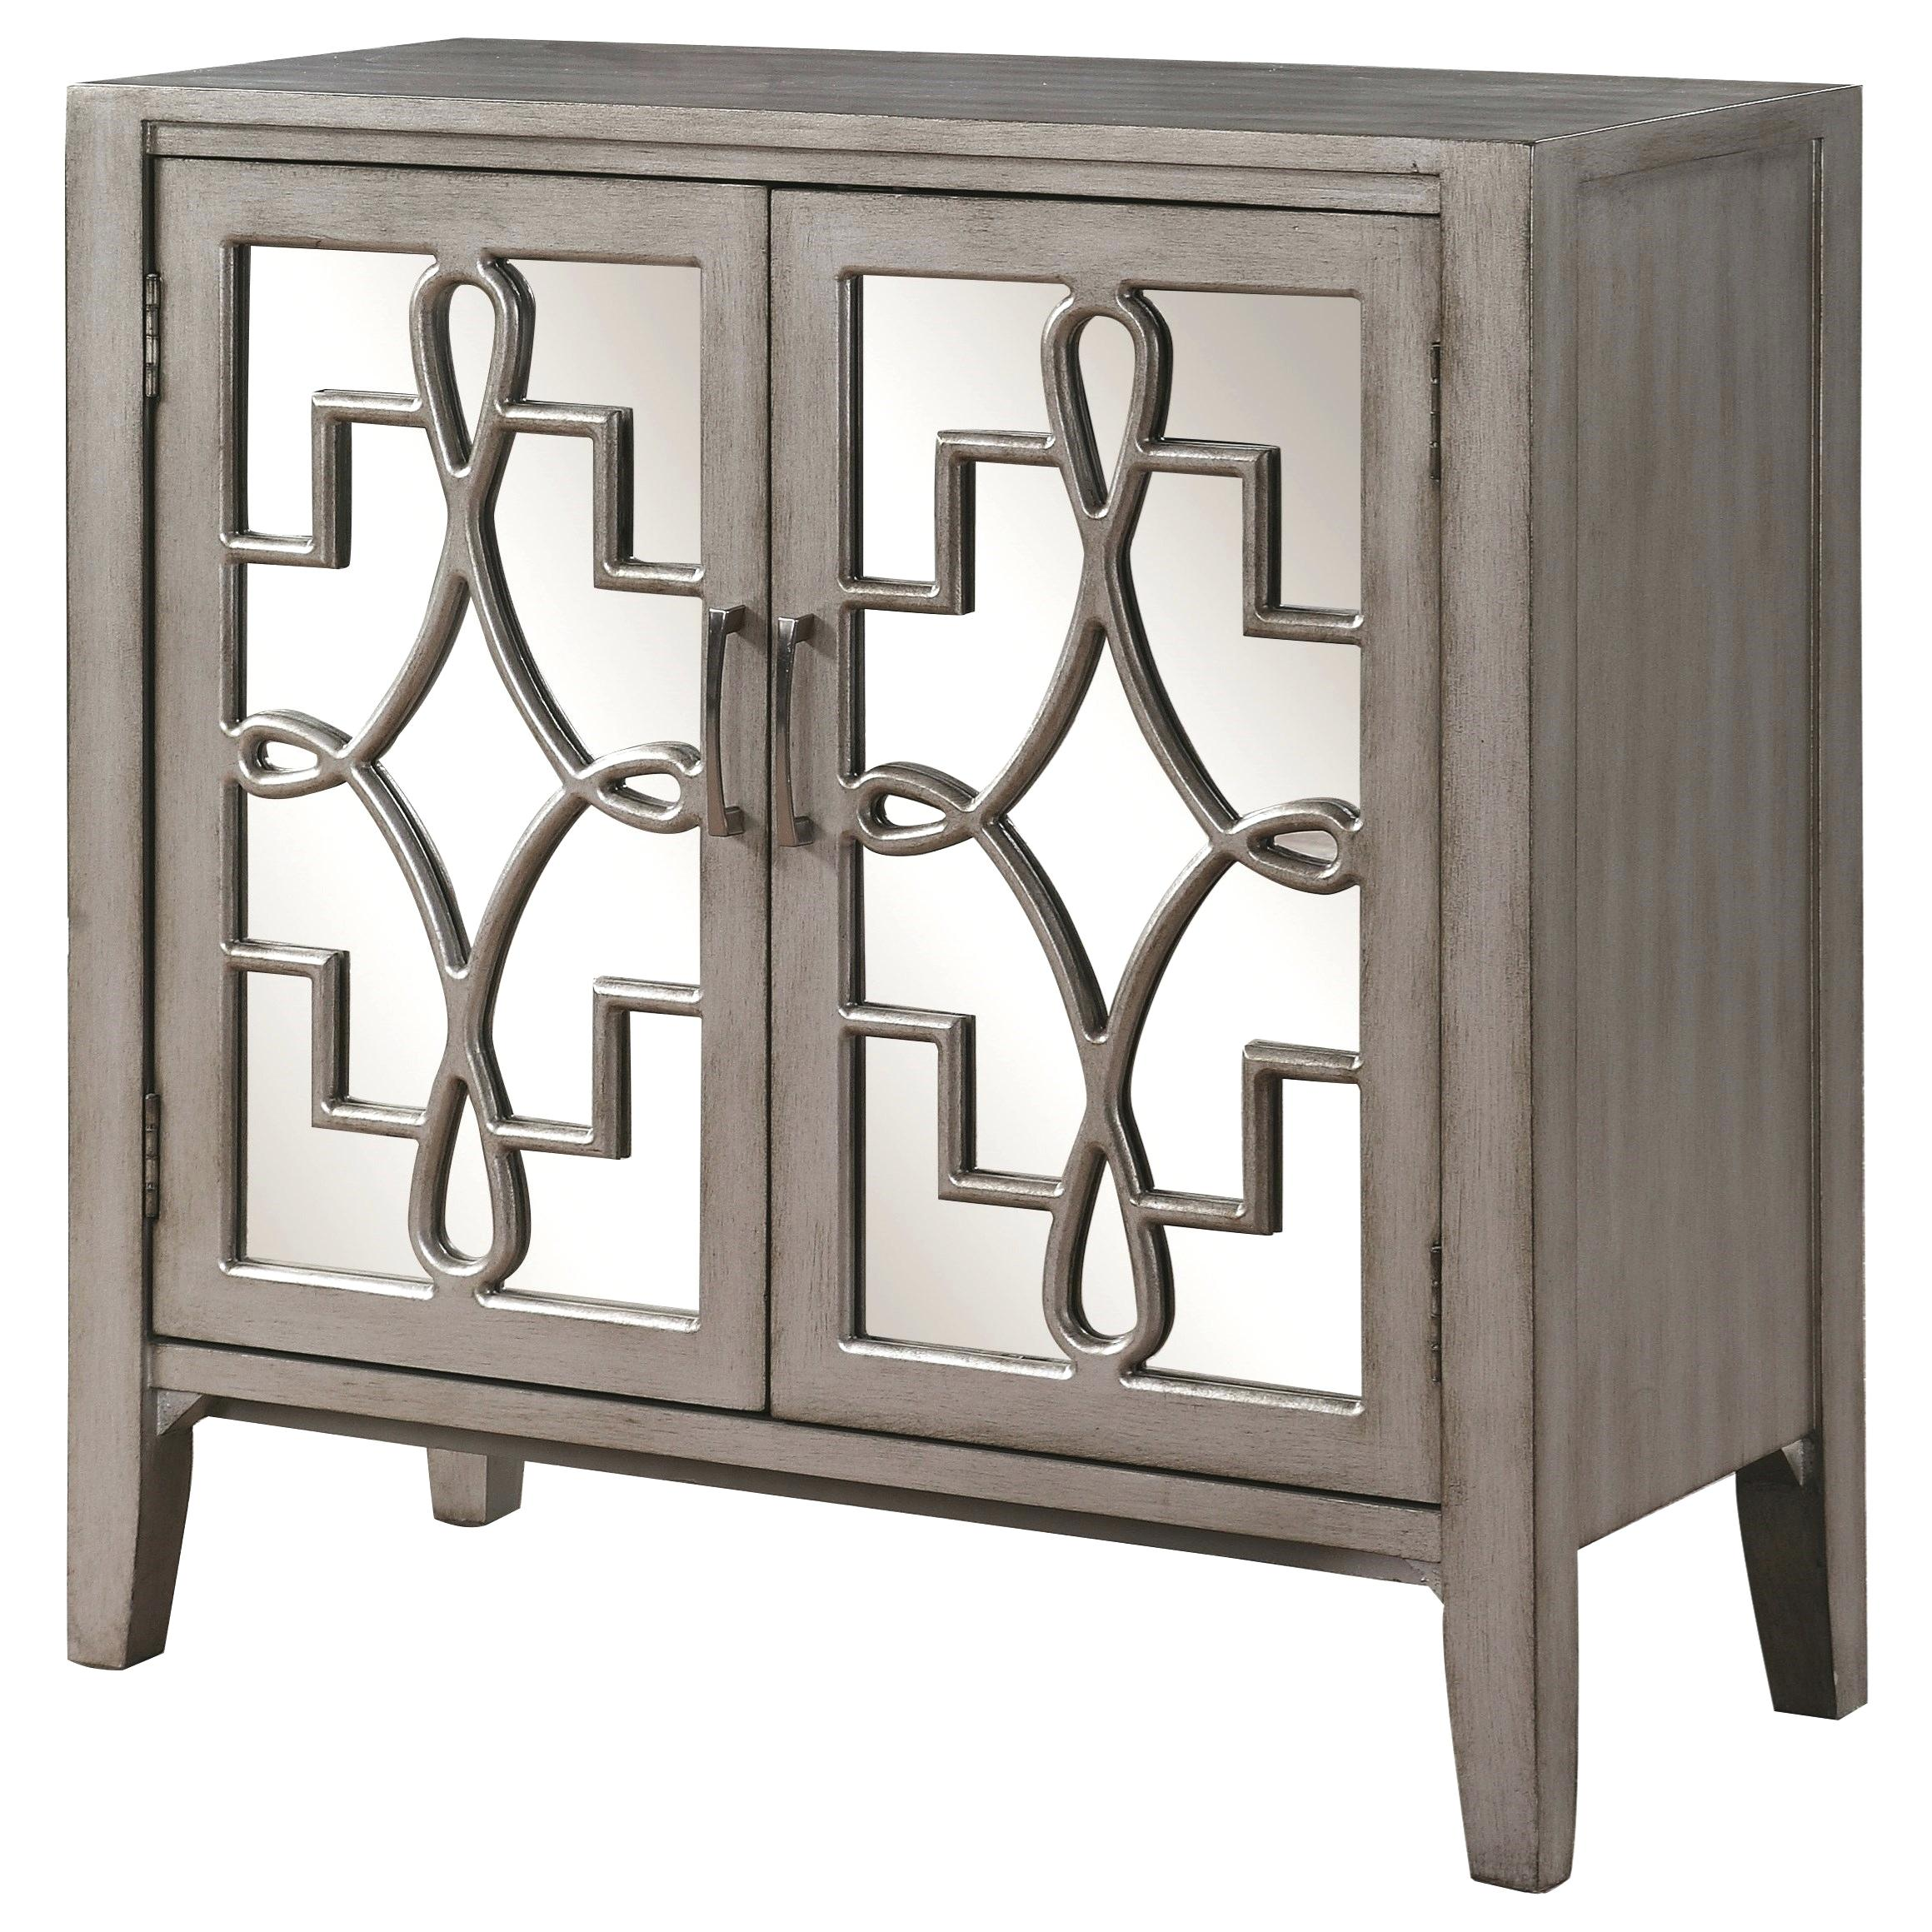 accent table with doors metal living cabinet mirrored accented lattice designs coaster fine furniture drawers pier candles chest coffee leick corner desk pedestal legs ikea